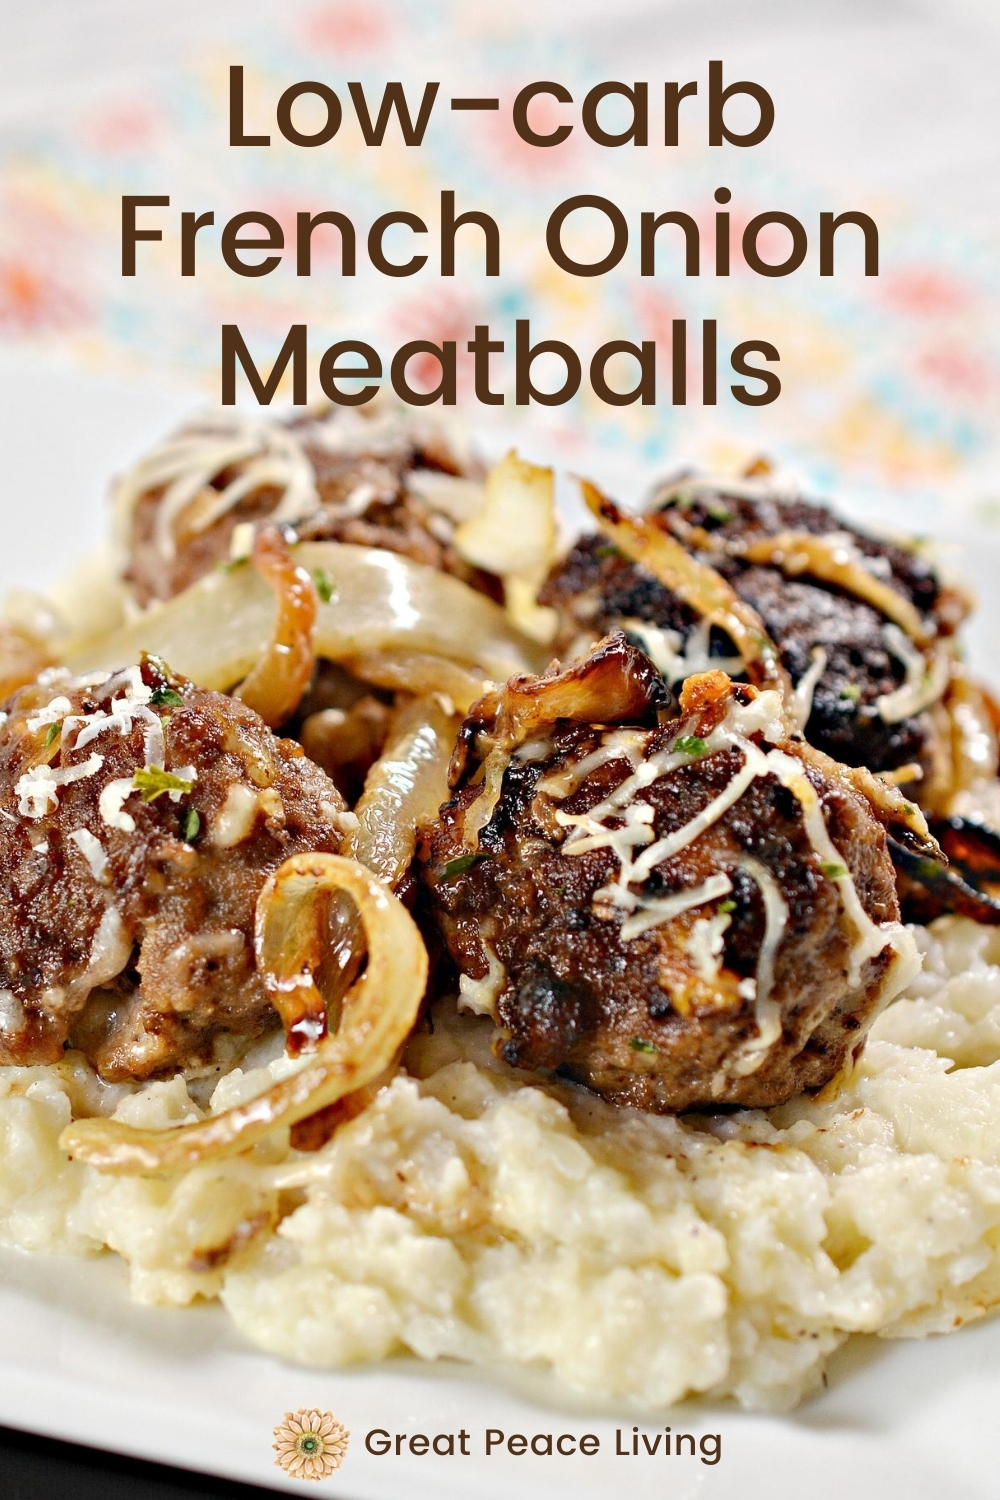 Low-carb French Onion Meatballs